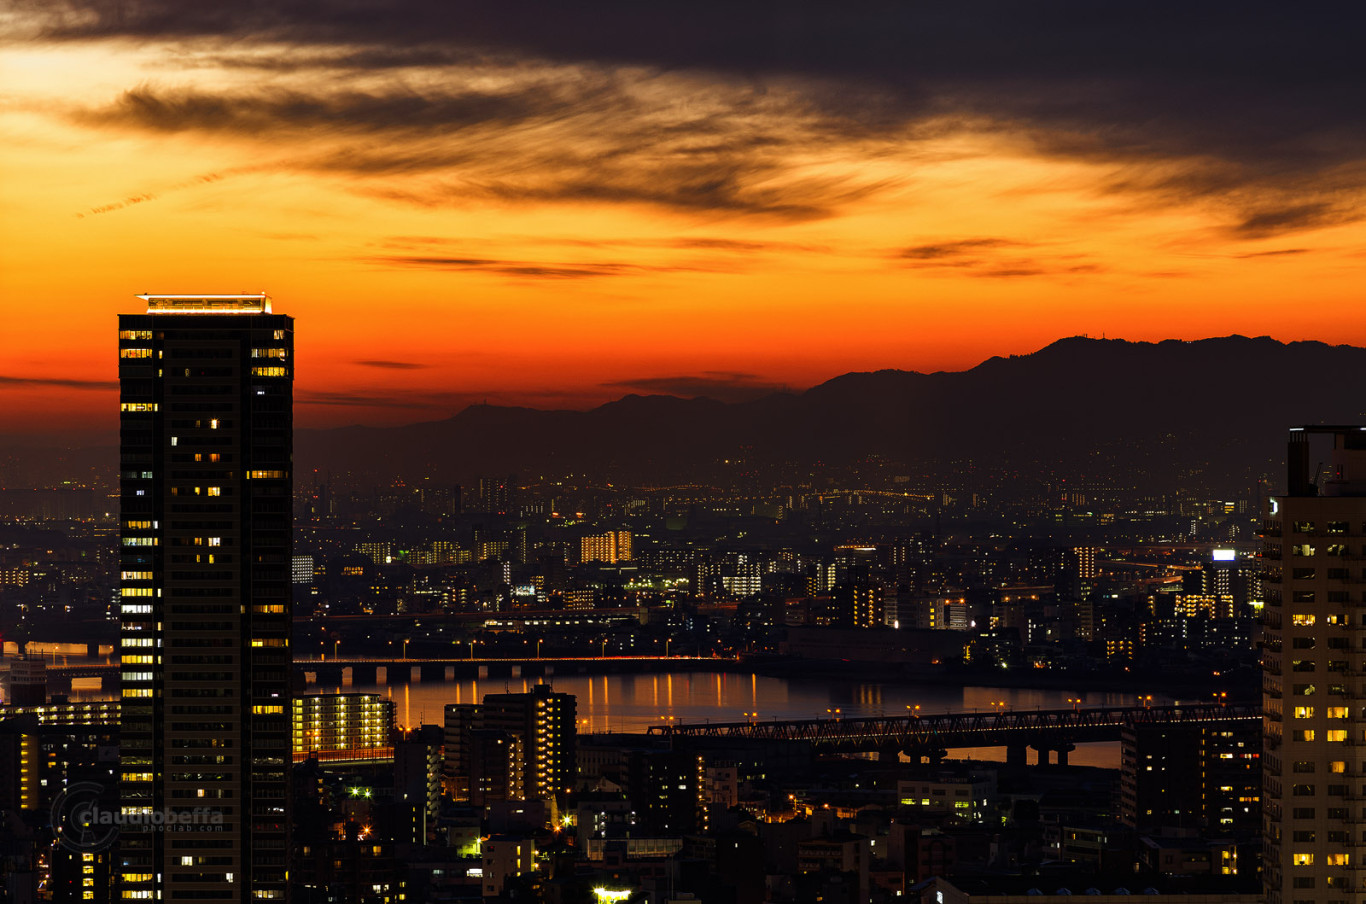 Osaka, Umeda, Sunset, Landscape, City, Skyscraper, River, Sky, Japan, Pentax